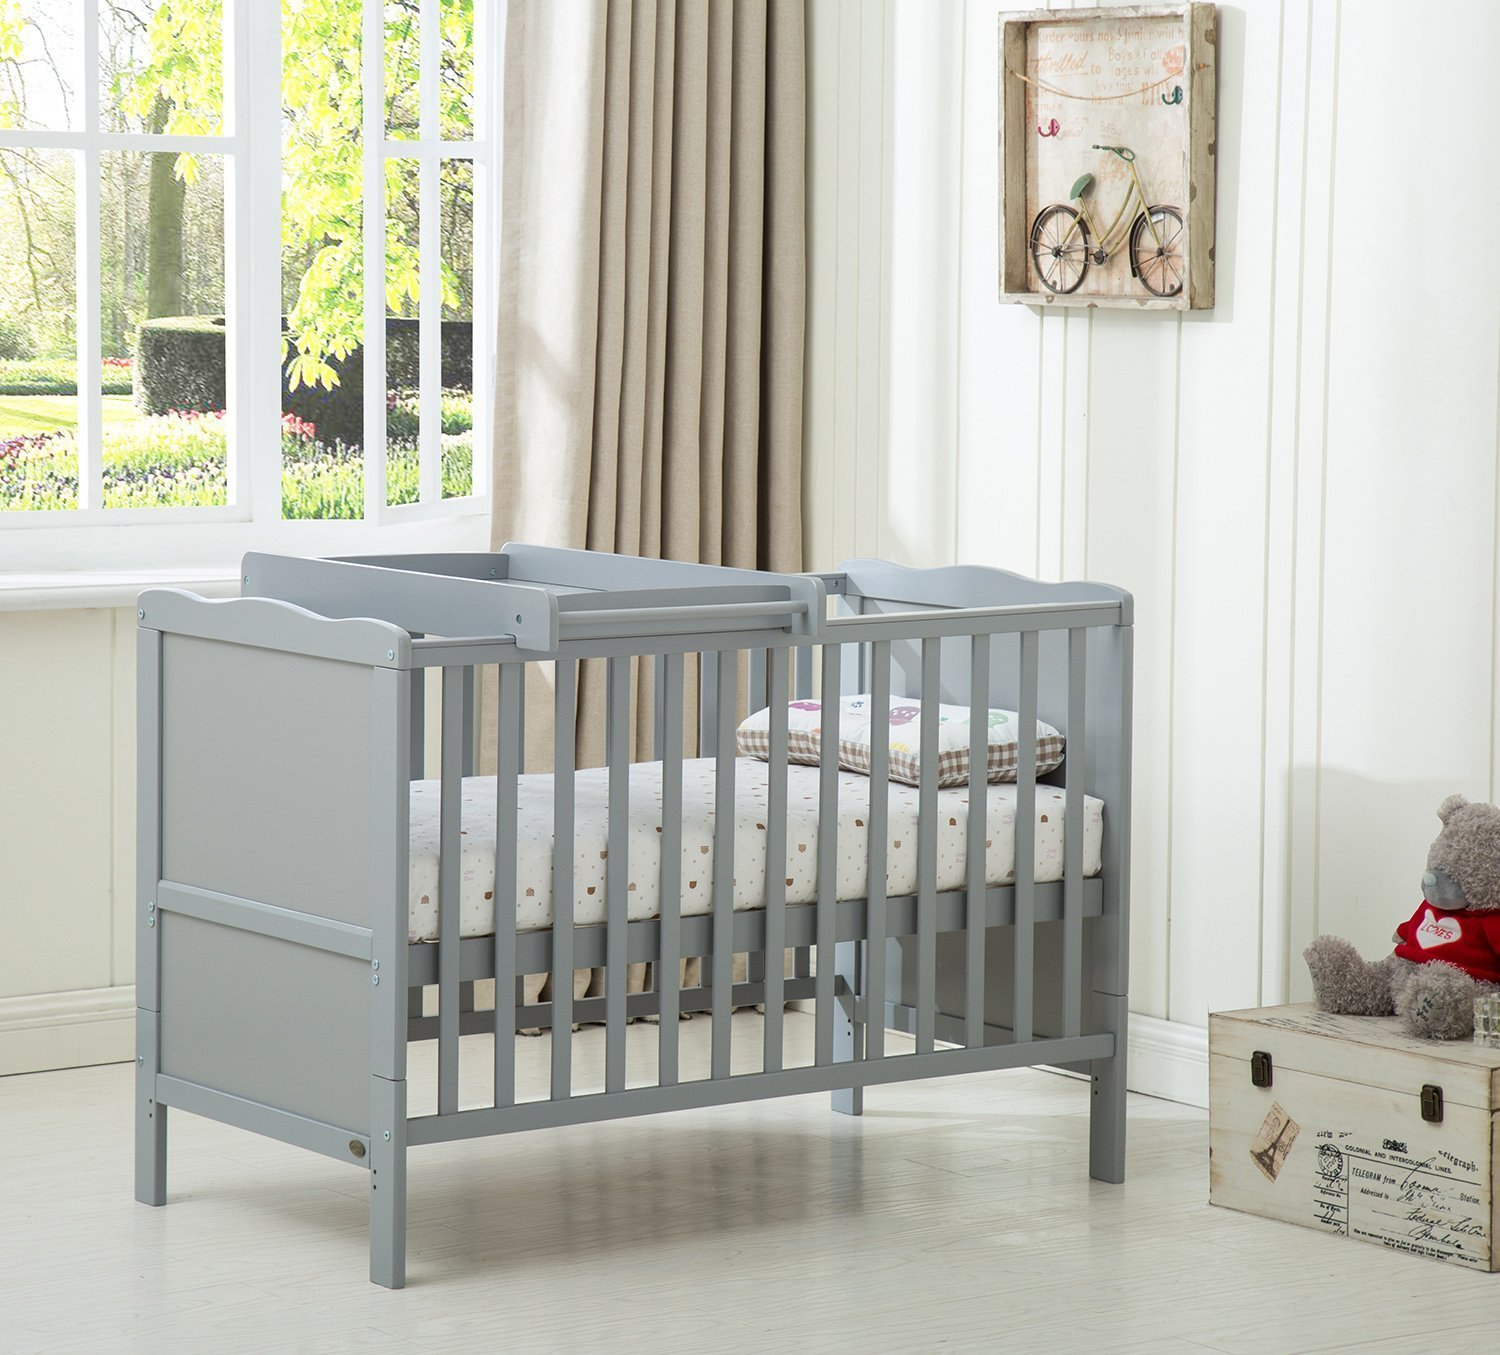 Wooden Baby Cot Bed✔Mattress✔Top Changer✔Teething rails-Converts to Junior Bed 8